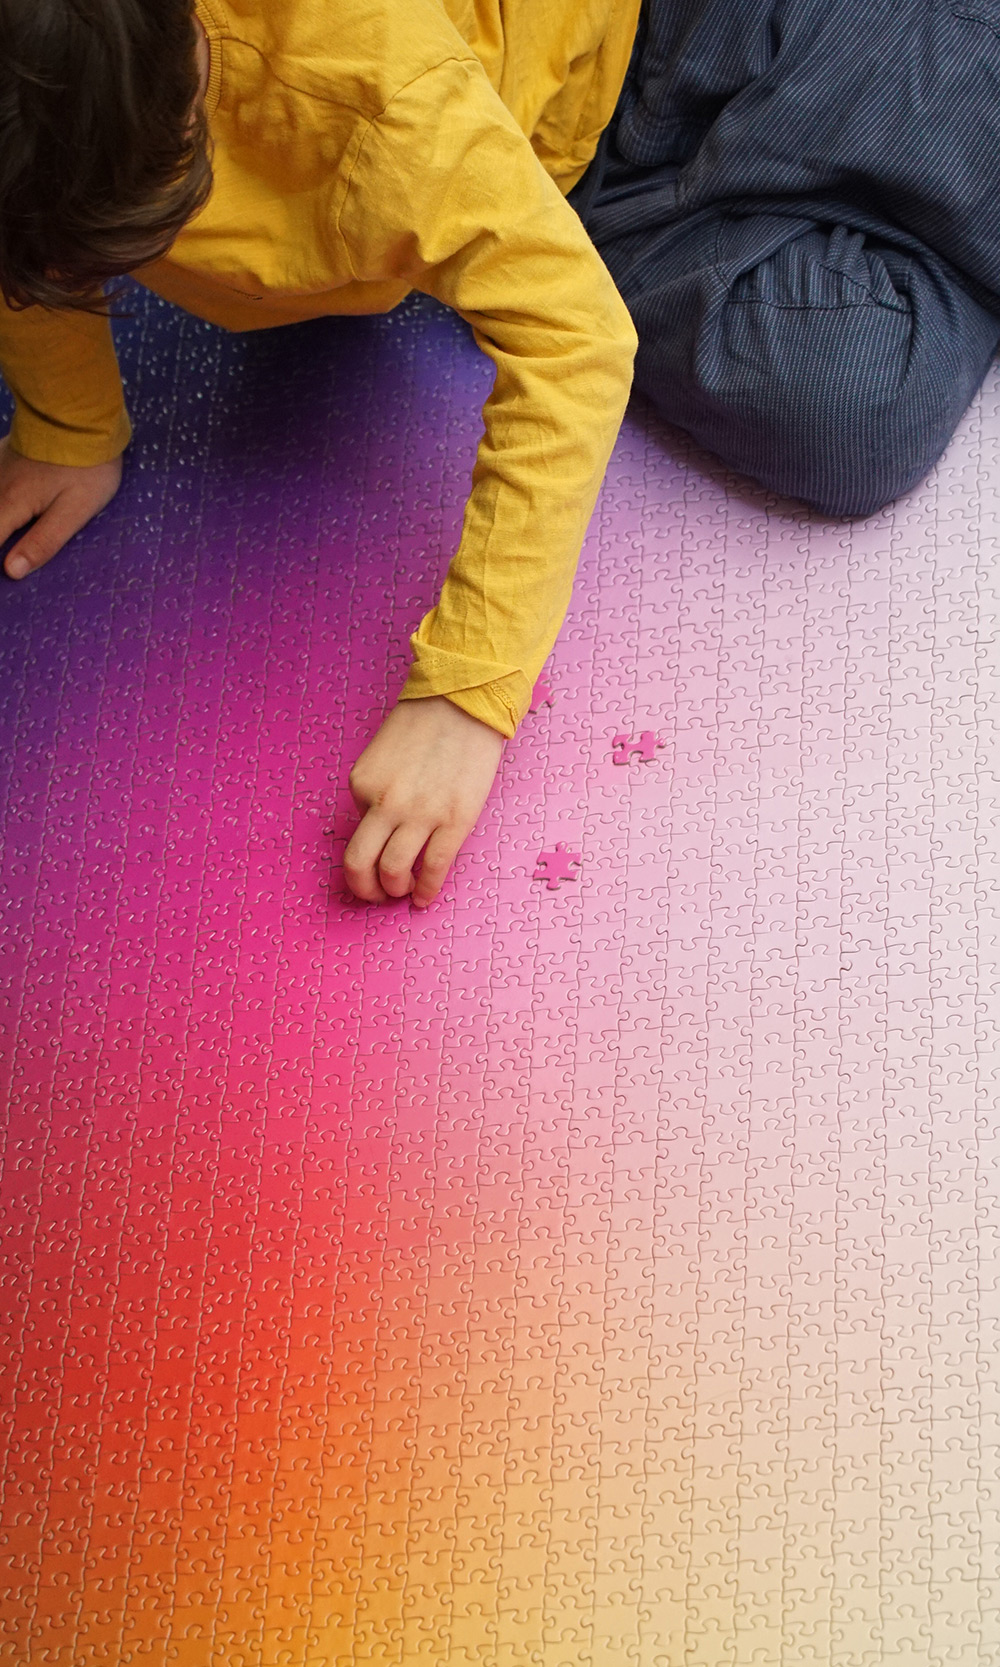 A Giant New 5,000-piece CMYK Color Gamut Jigsaw Puzzle by Clemens Habicht